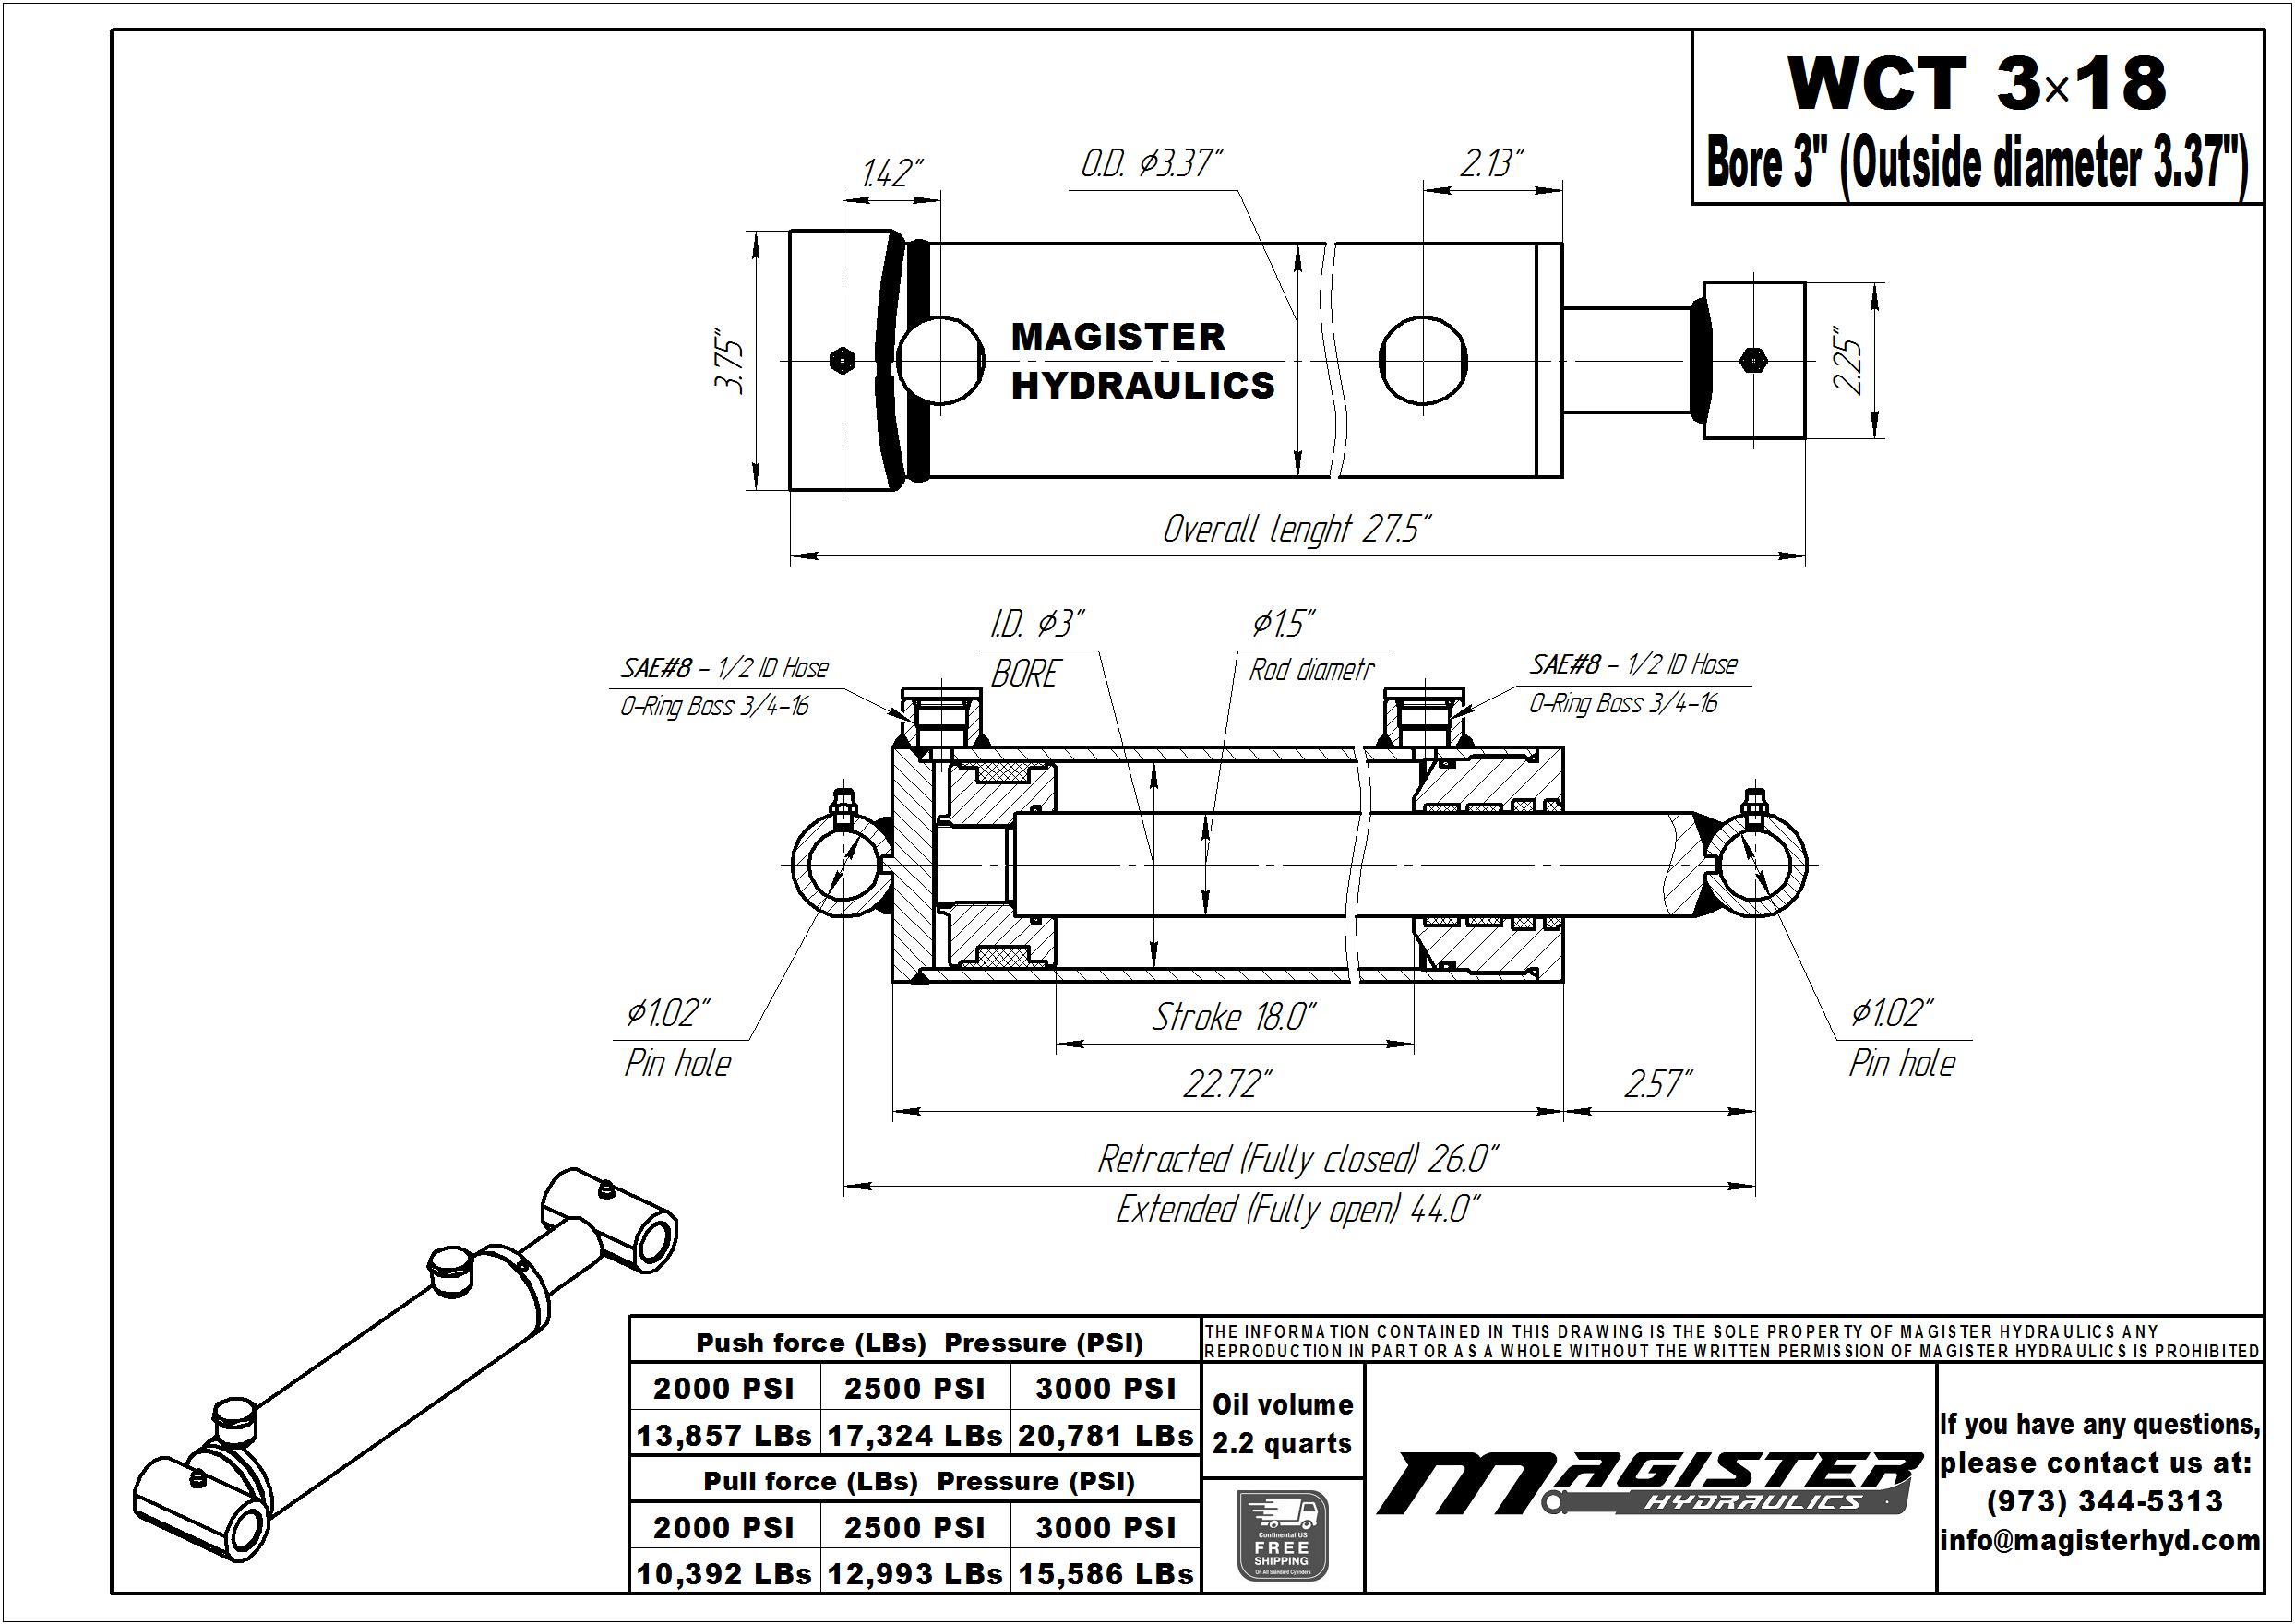 3 bore x 18 stroke hydraulic cylinder, welded cross tube double acting cylinder | Magister Hydraulics